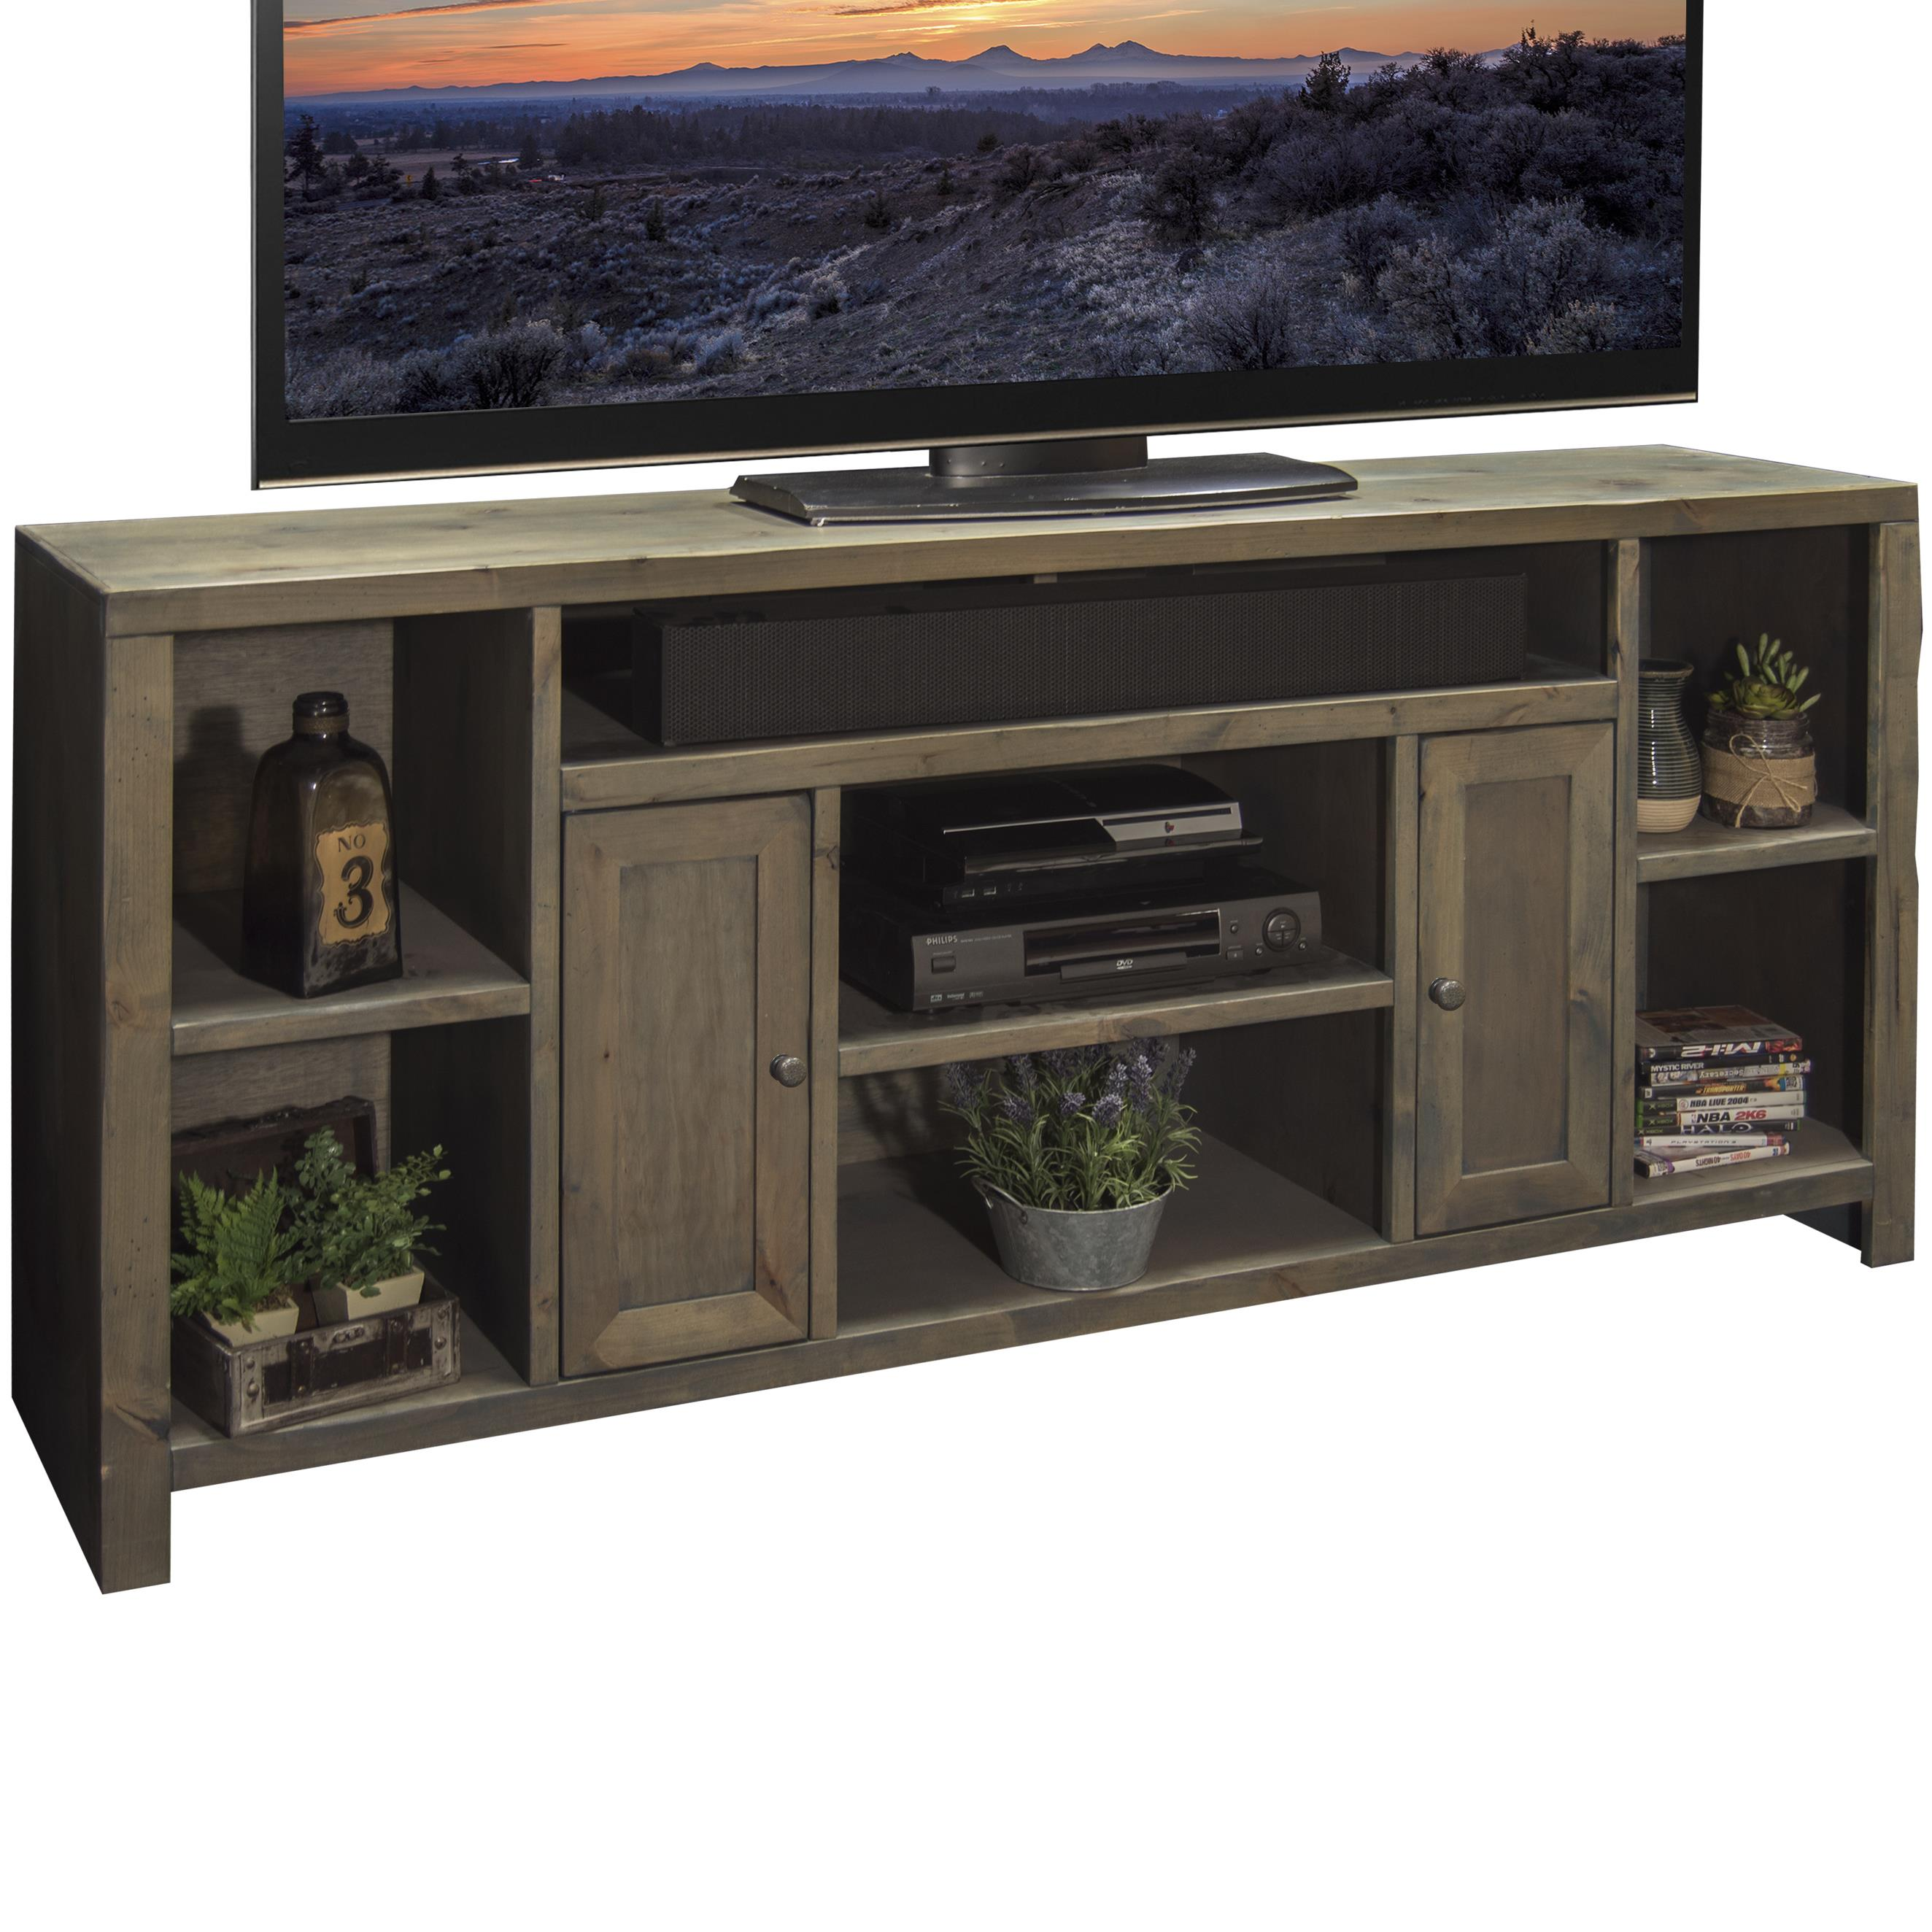 "Legends Furniture Joshua Creek 65"" TV Console - Item Number: JC1265-BNW"